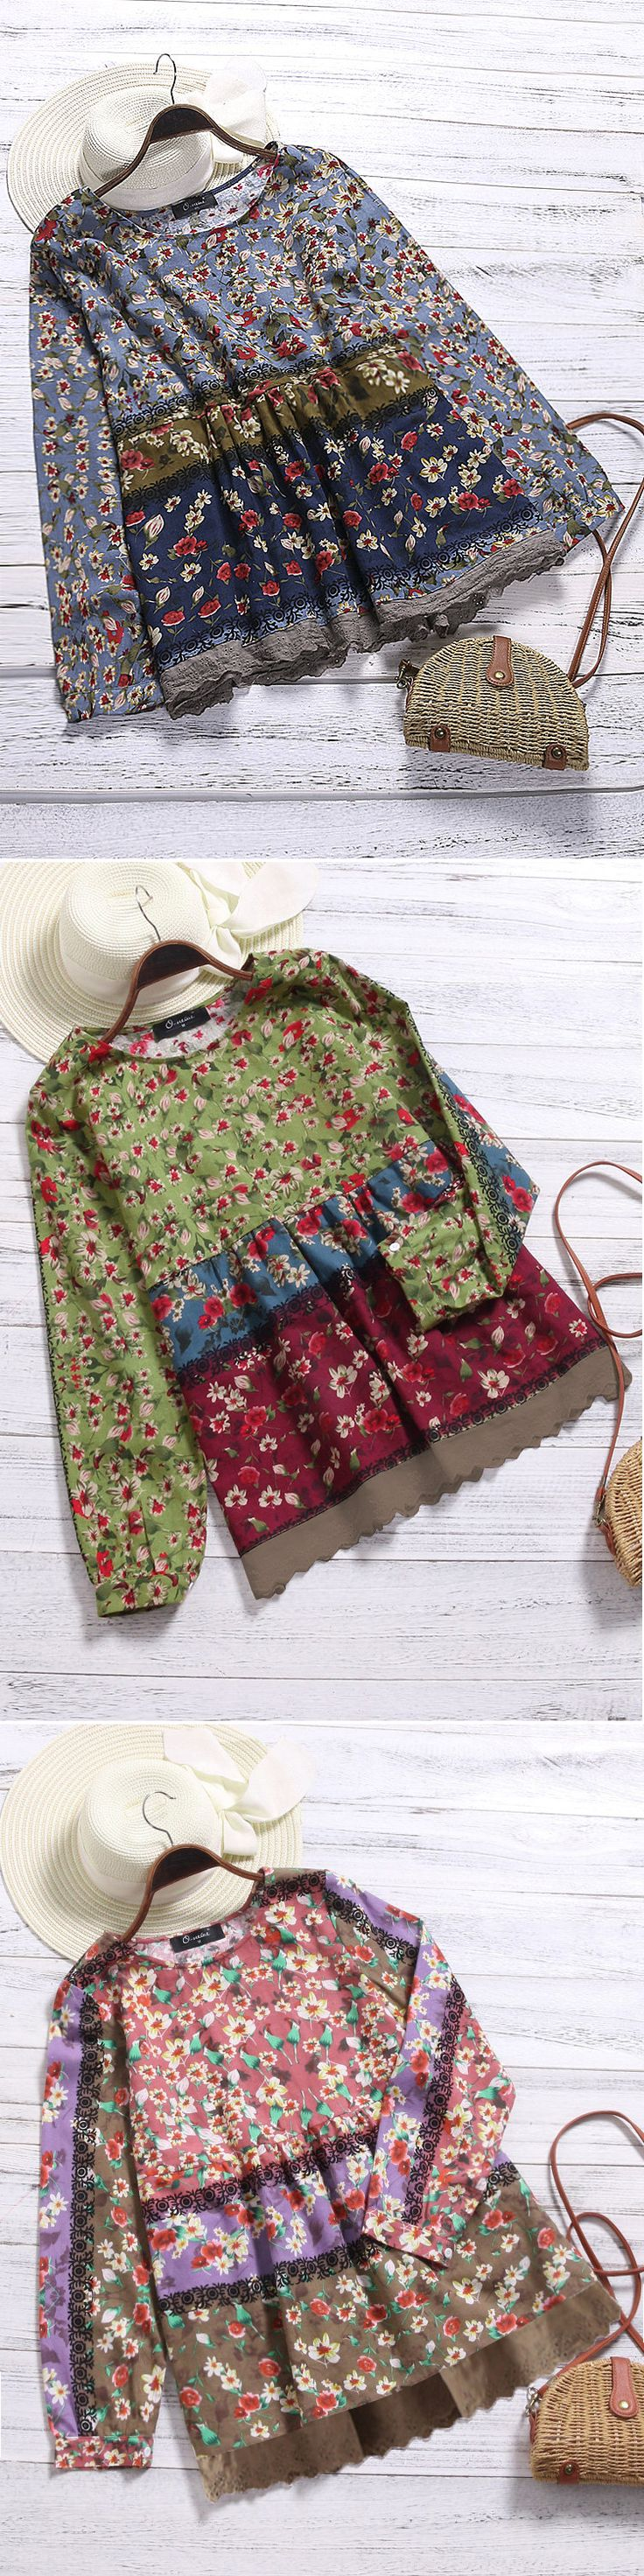 O-NEWE Vintage Floral Printed Patchwork Shirt For Women